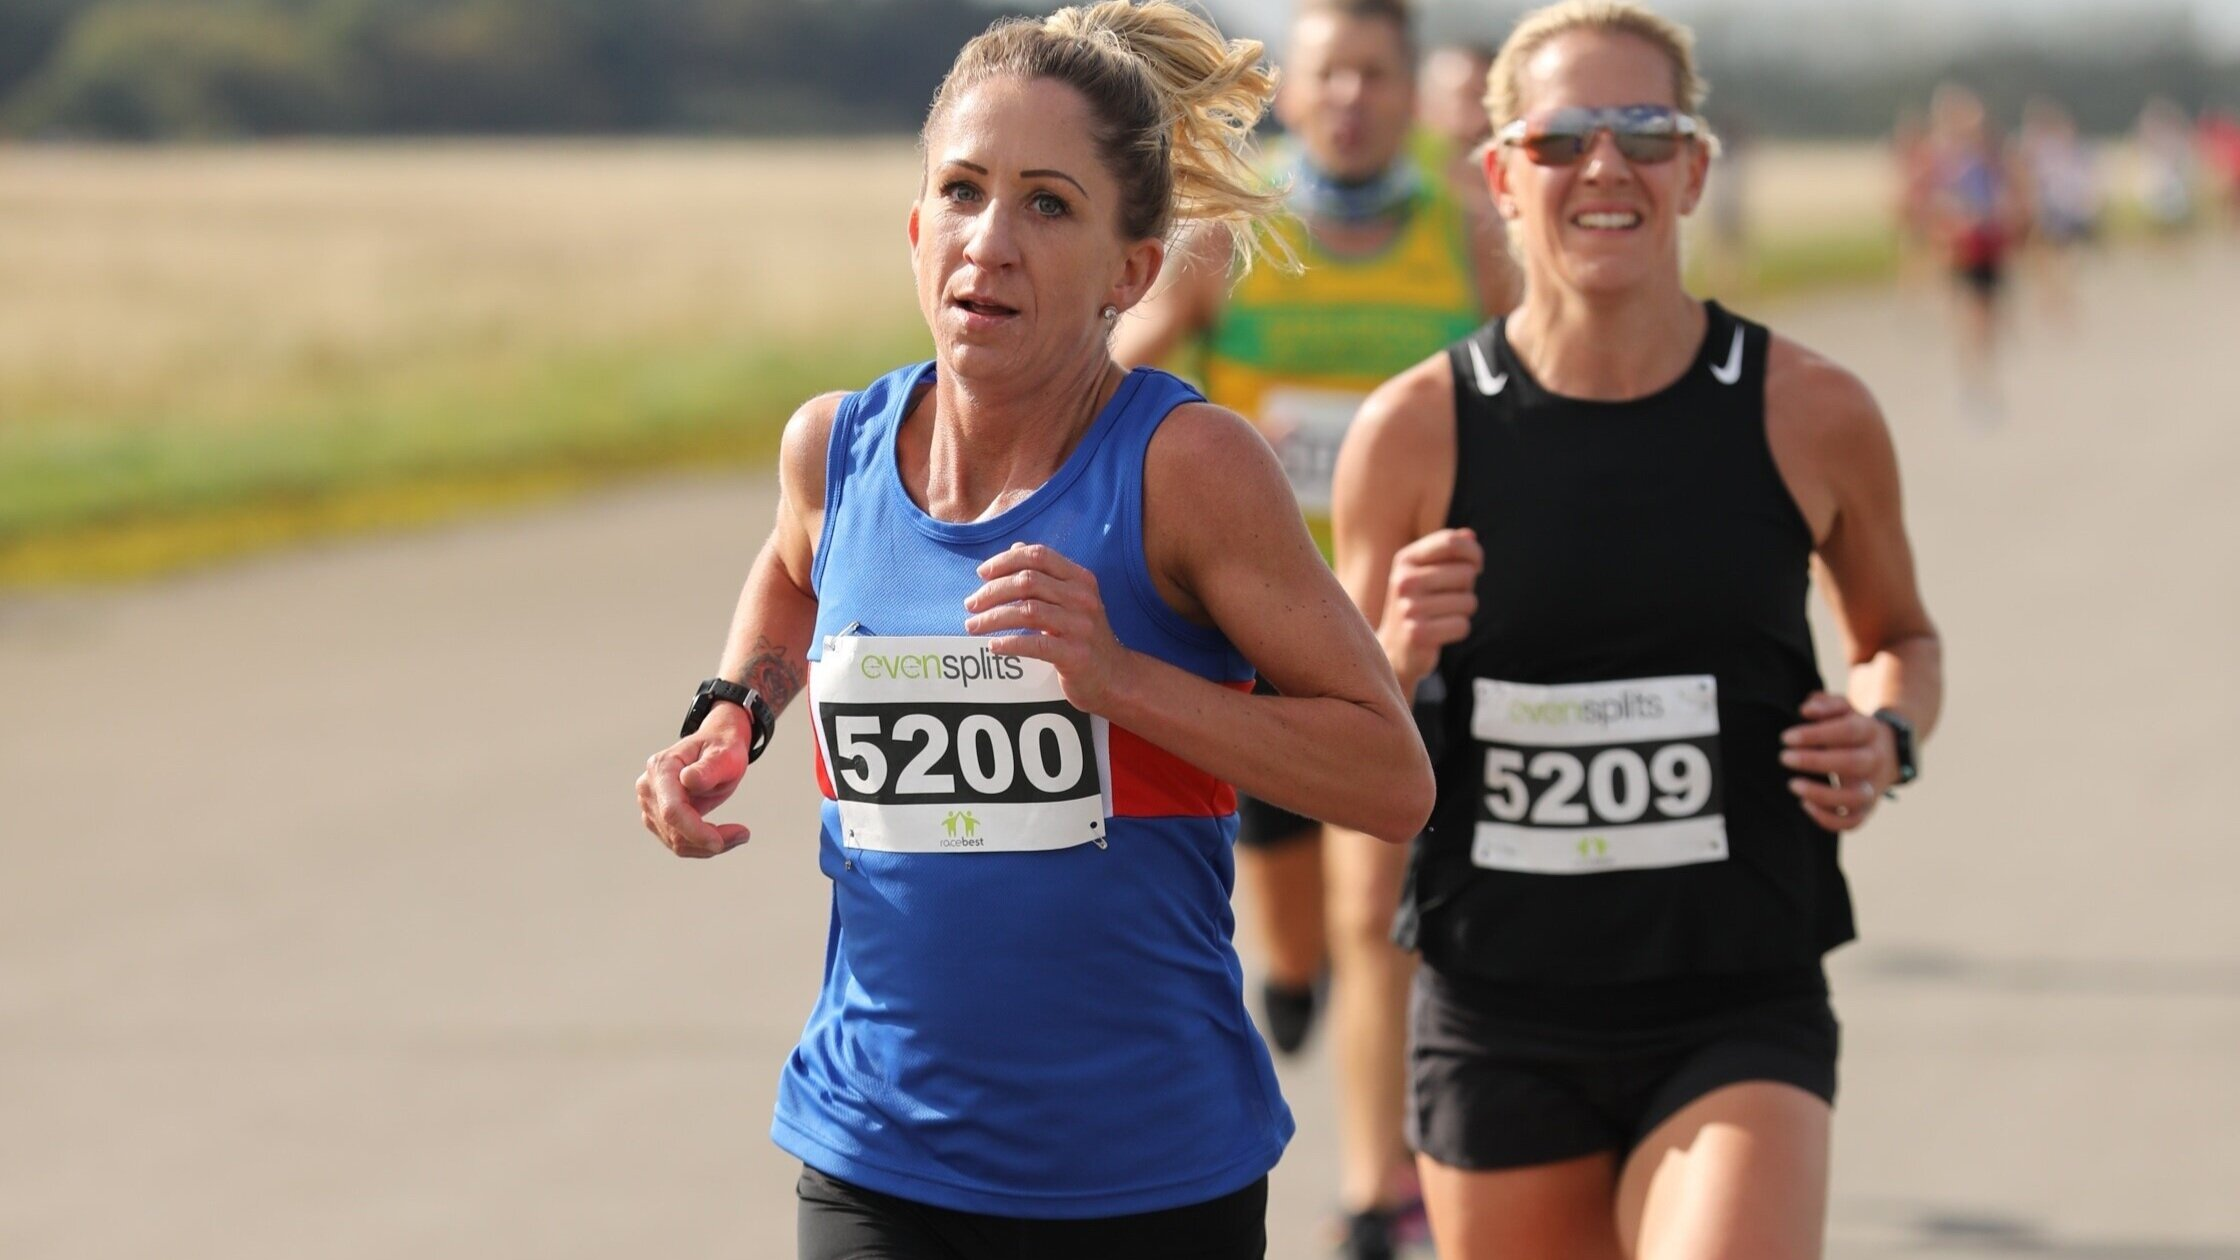 5K%2Brace - How To Get A Permit For A 5k Race